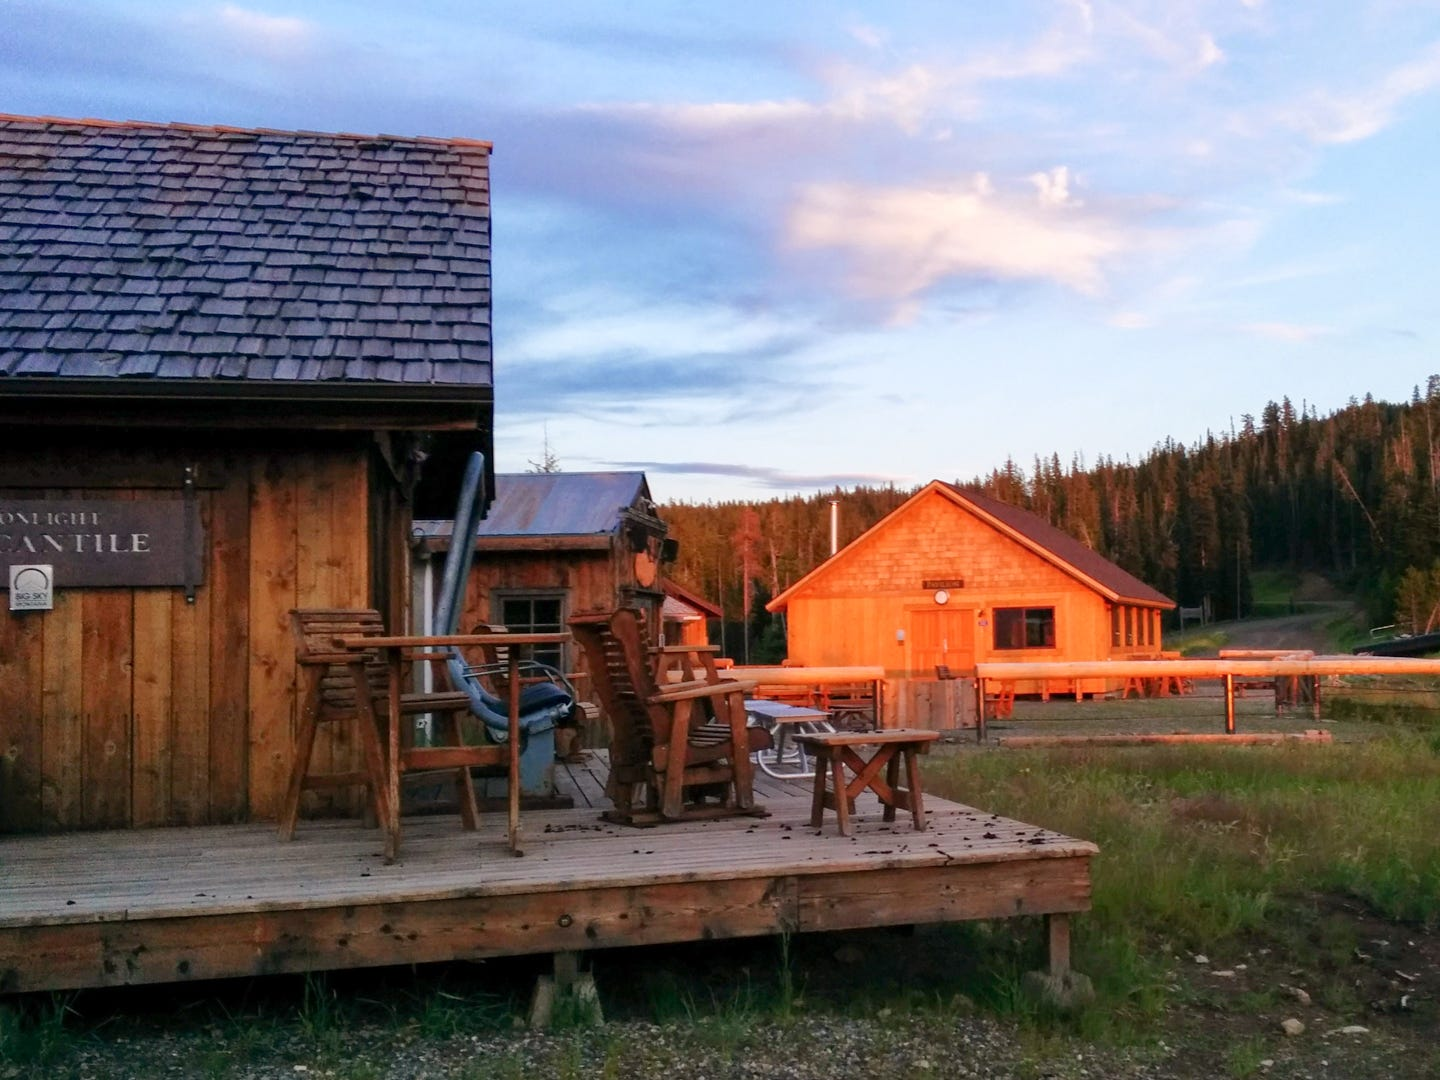 Montana: You can definitely expect to see wide-open skies in Big Sky, but there's also so much to do in the Montana town with a Western flair. Skiing enthusiasts will love the more than 5,800 acres of skiable terrain, but there's plenty of outdoor fun to enjoy during the warmer months too, from whitewater rafting to hiking. It's also a good base camp for those looking to explore Yellowstone National Park. If you want to fly in for a ski trip, avoid going in December, which is the most expensive time to visit the state of Montana. Geyser Whitewater Expeditions Half-Day Gallatin River Rafting Adventure: $68.